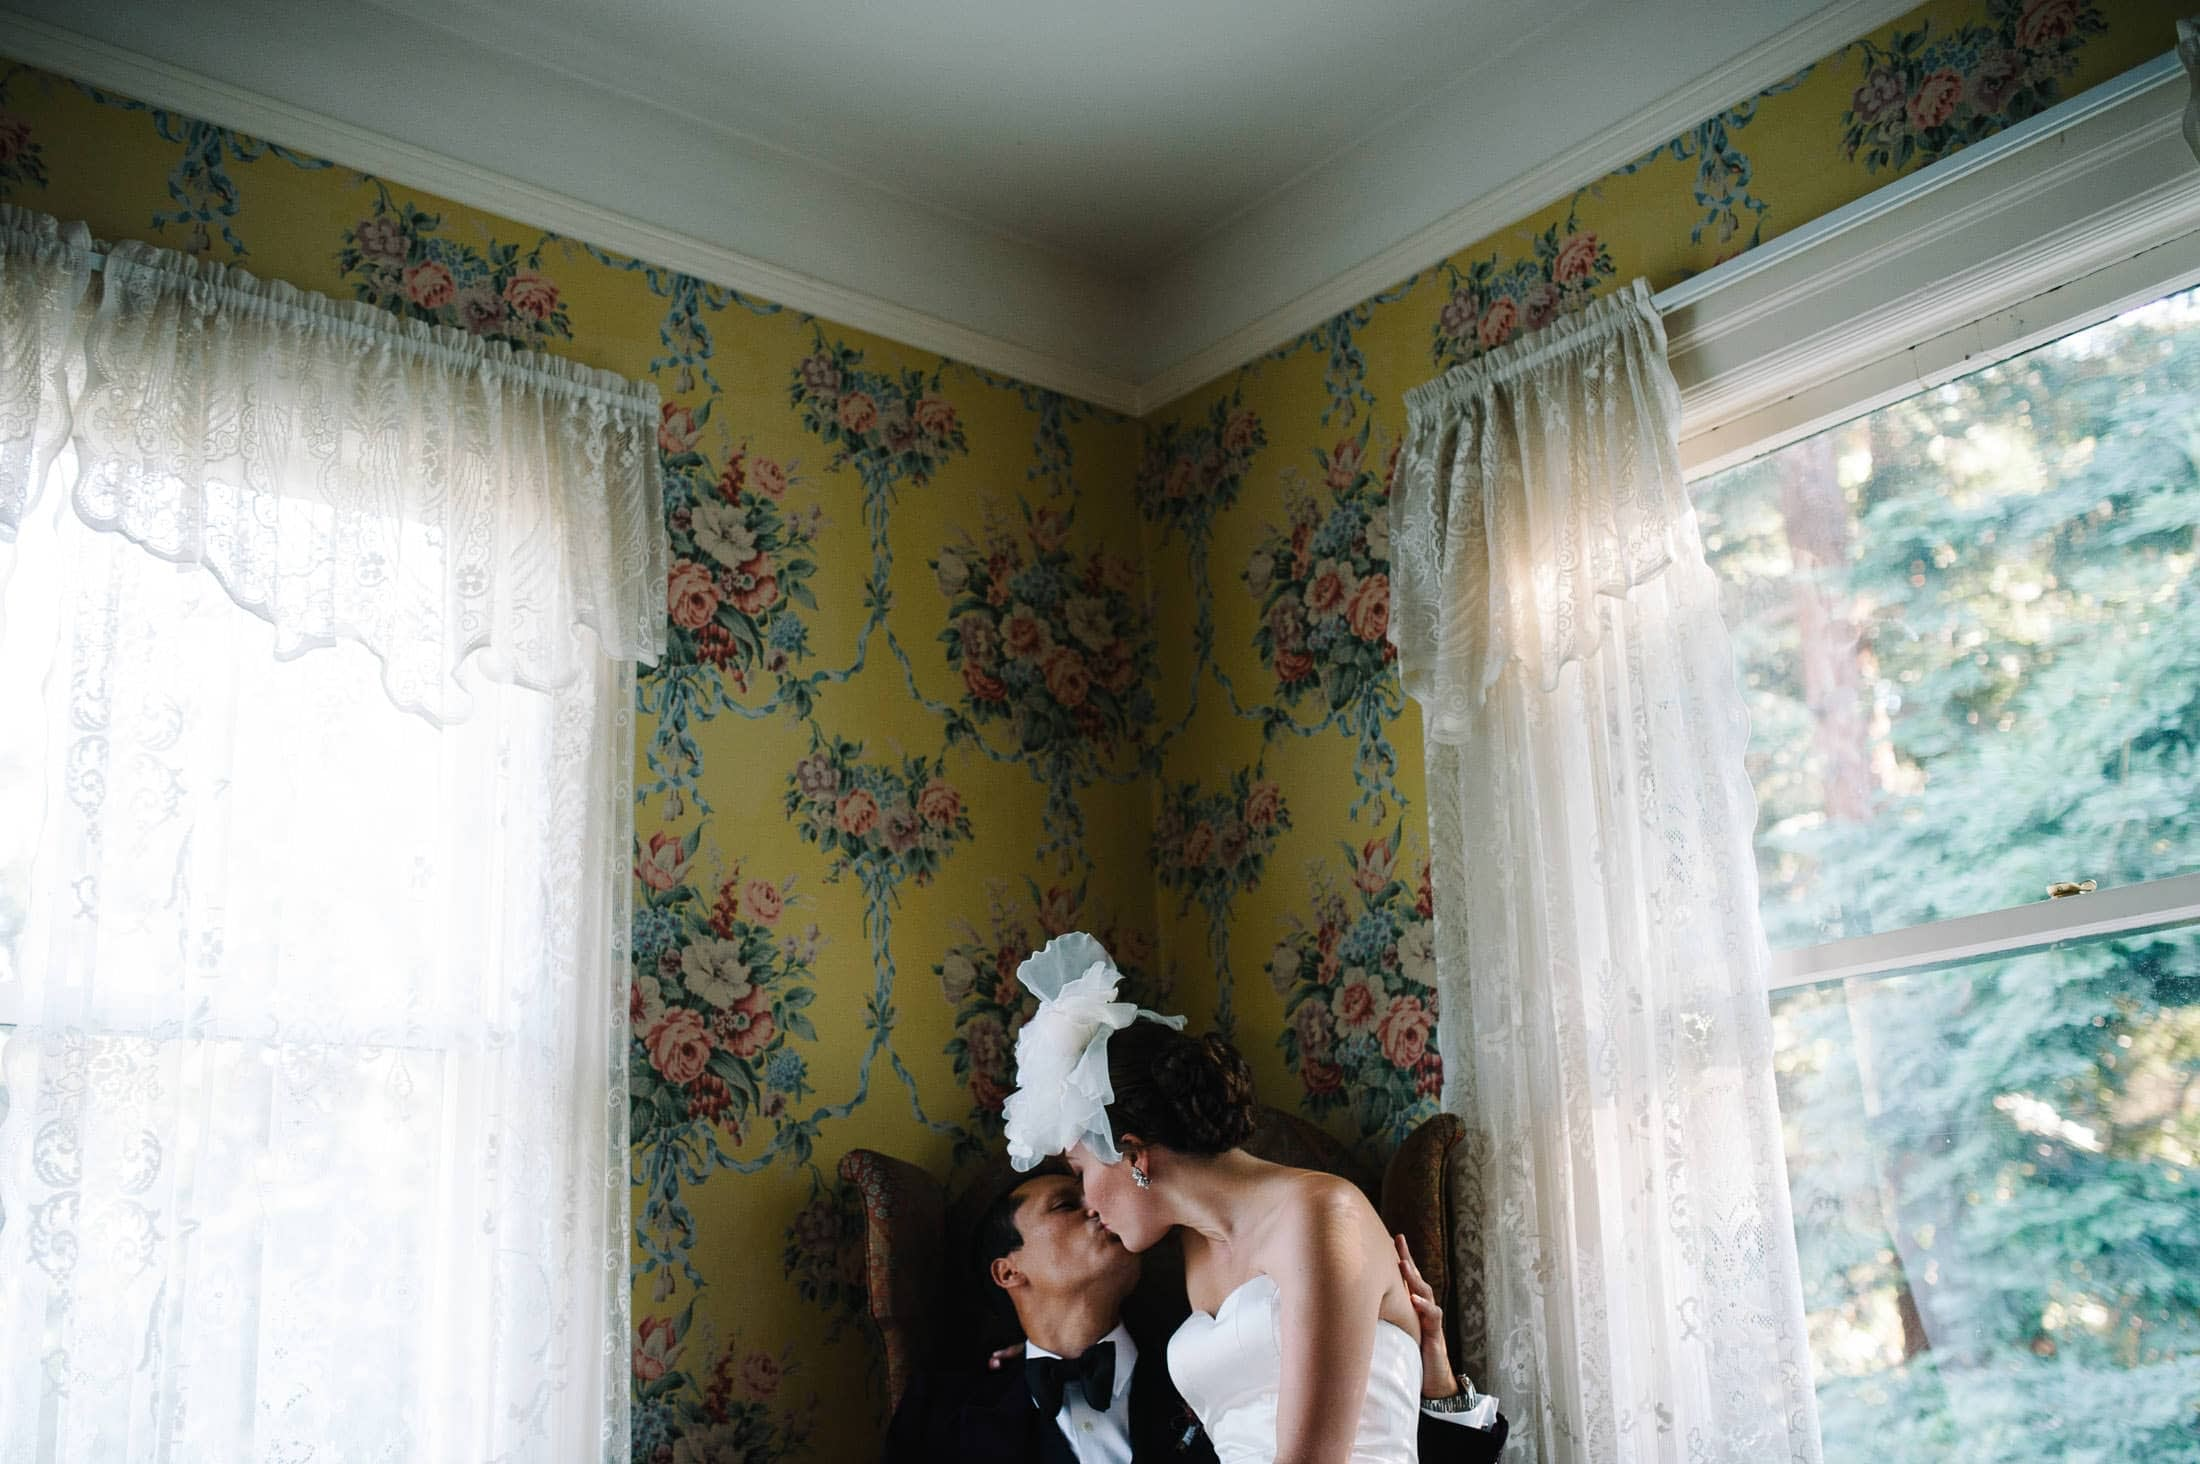 fun artistic shot of bride and groom kissing against floral wall paper at Atherton Wedding